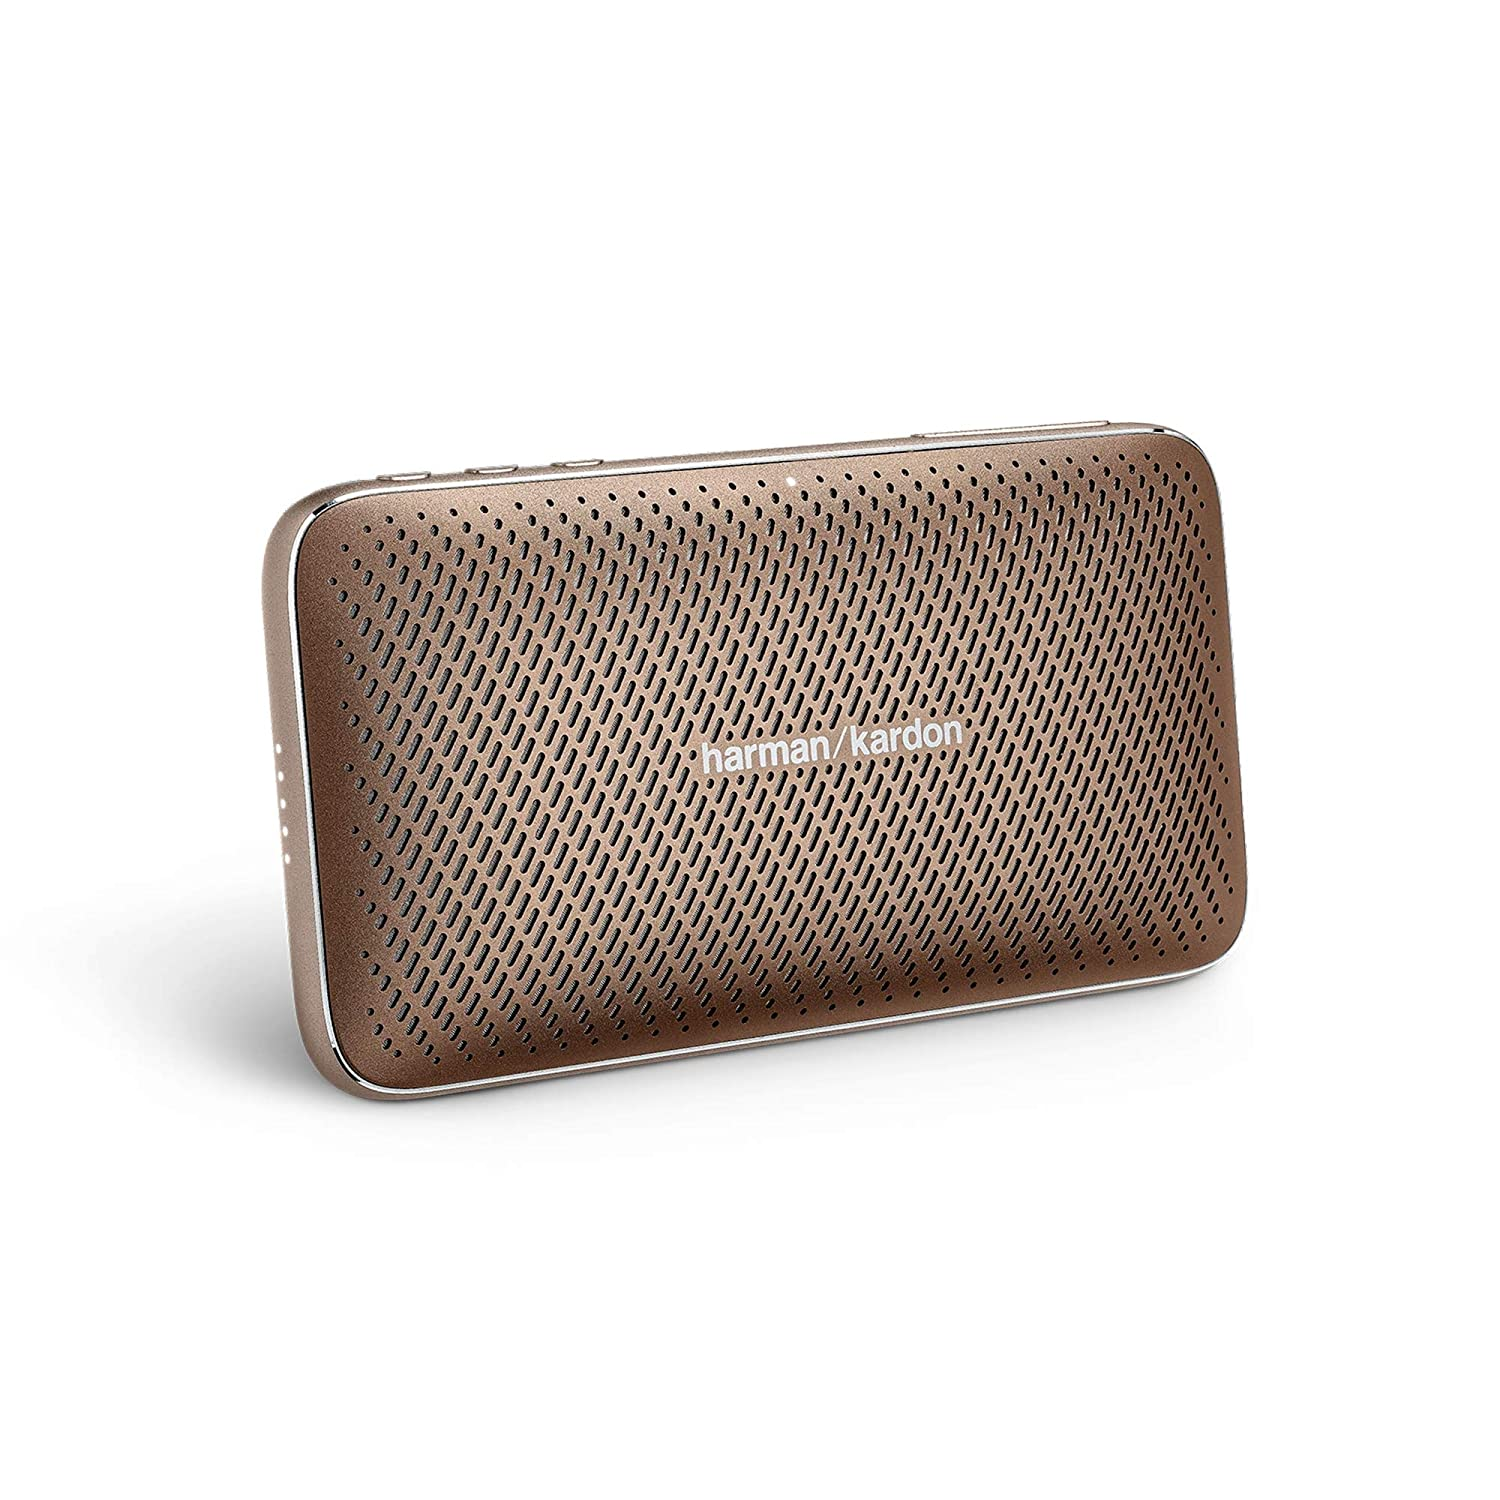 Harman Kardon Esquire Mini 2 Portable Bluetooth Speaker with Mic and Powerbank - Brown